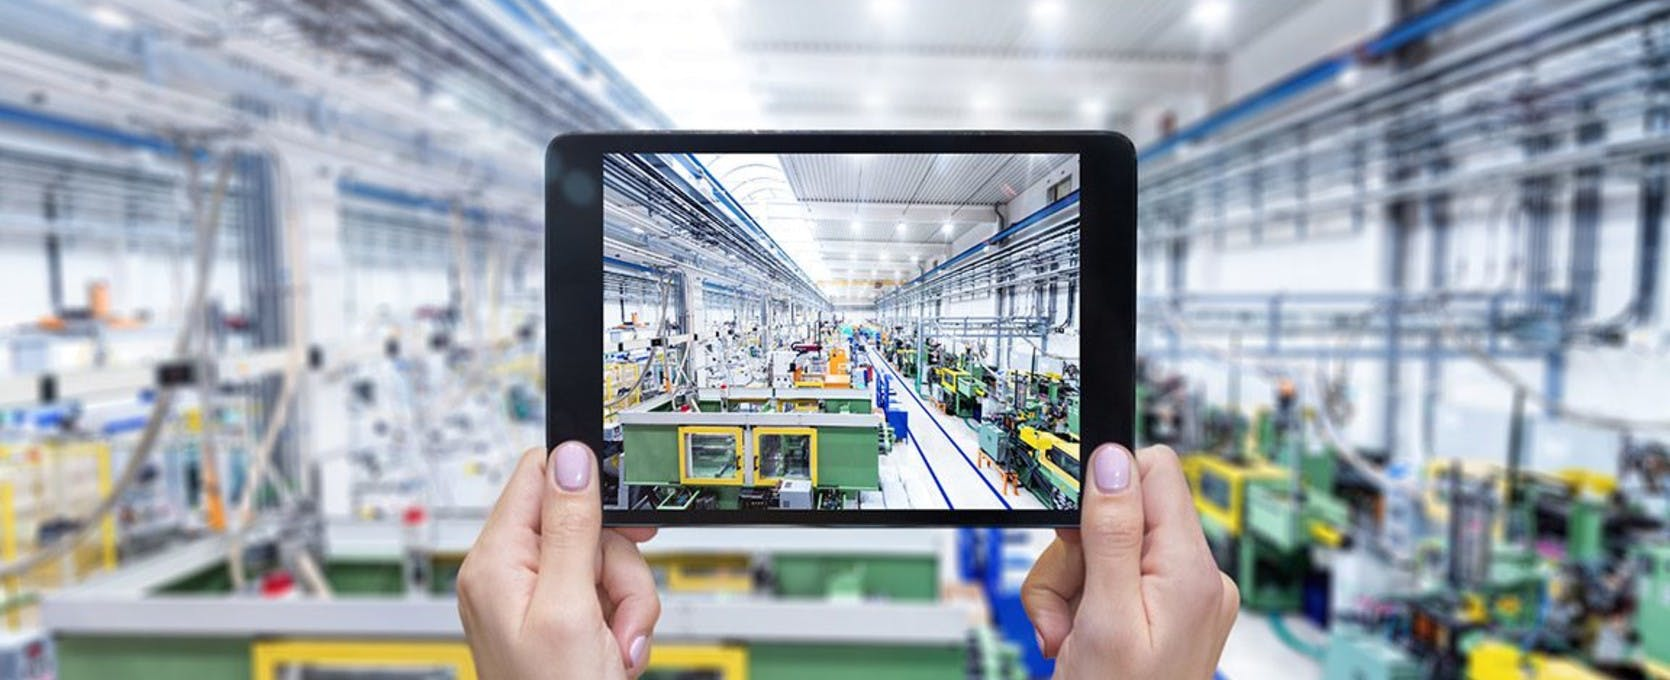 Taking a picture of an industrial workspace on a tablet